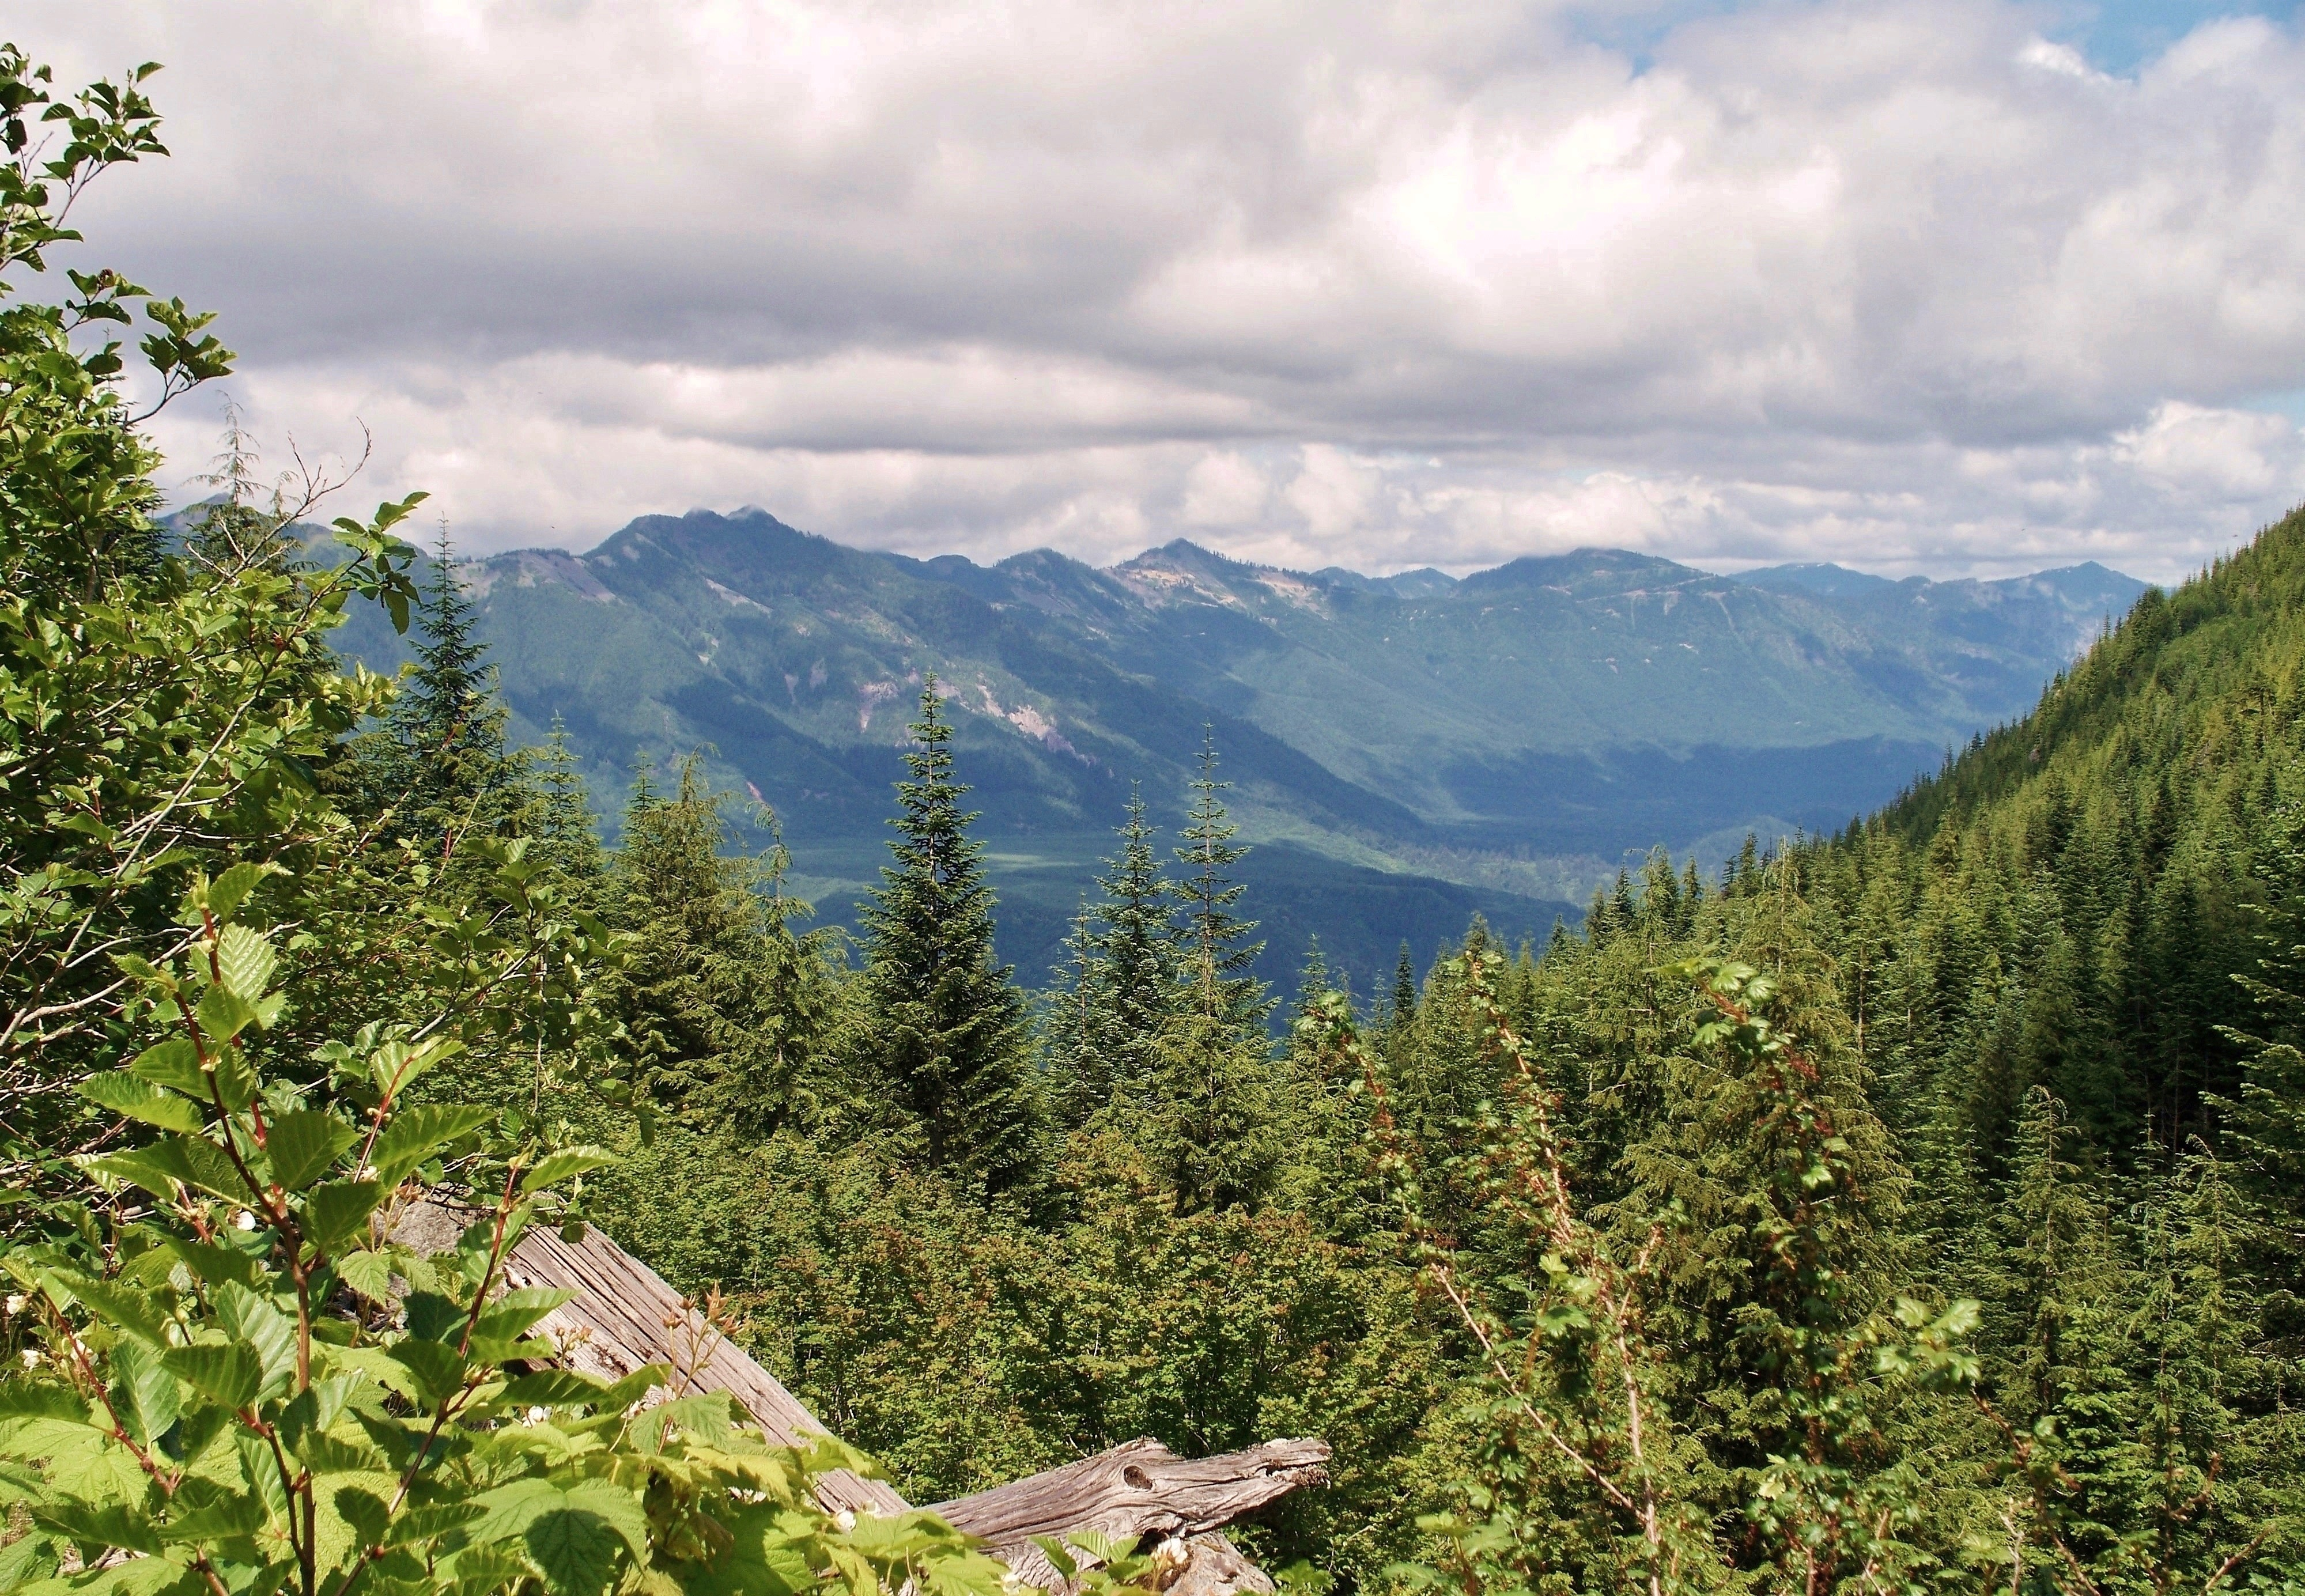 To the northeast, the forest opens to a view up the Middle Fork Snoqualmie River Valley. Mount Washington Trail, July 09, 2009.